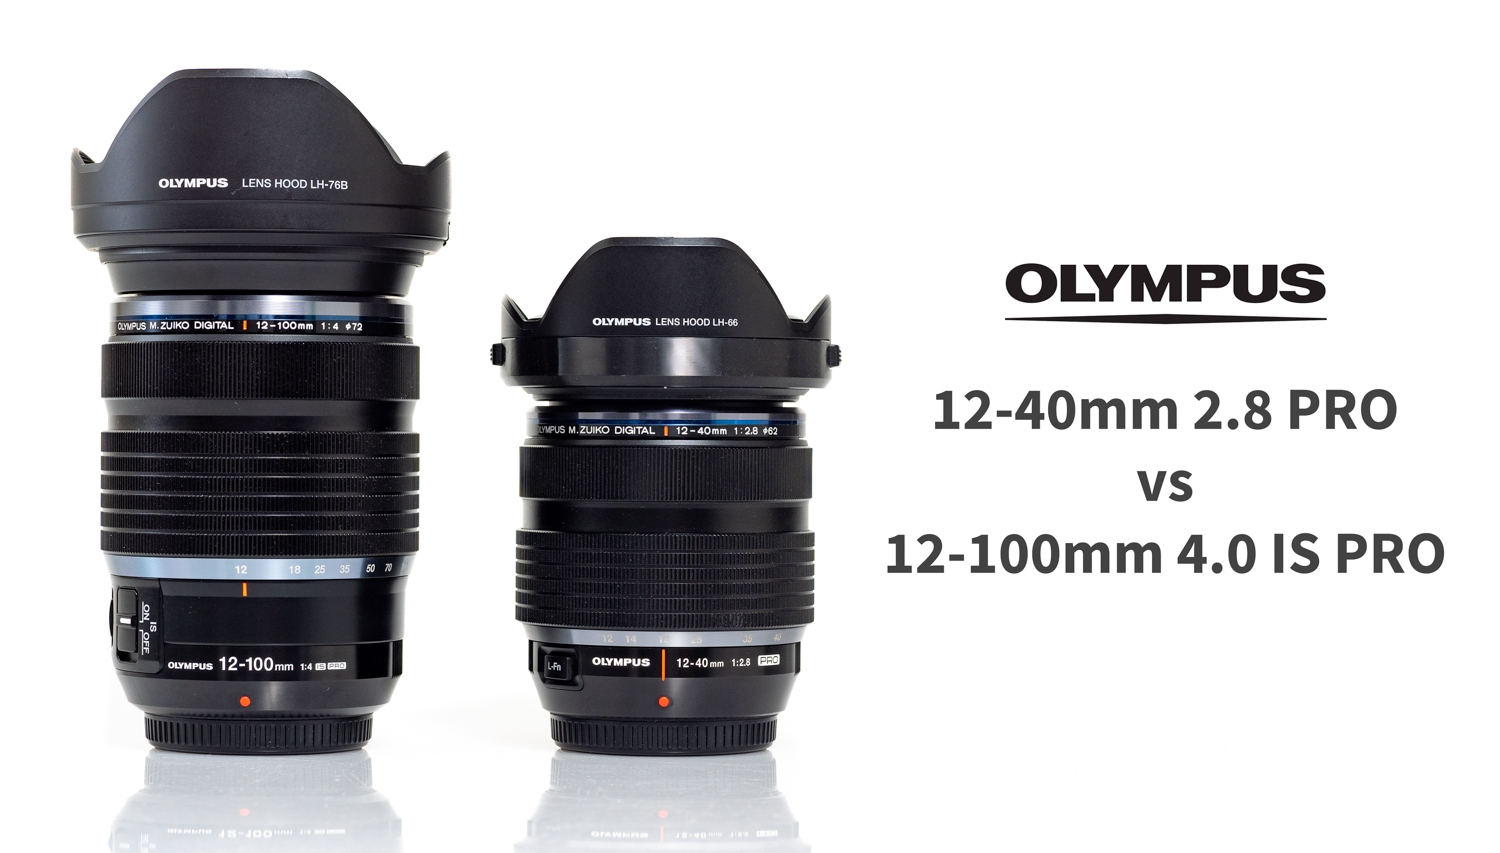 Olympus 12-40/2.8 vs 12-100/4.0 - Which One Is Right For You?